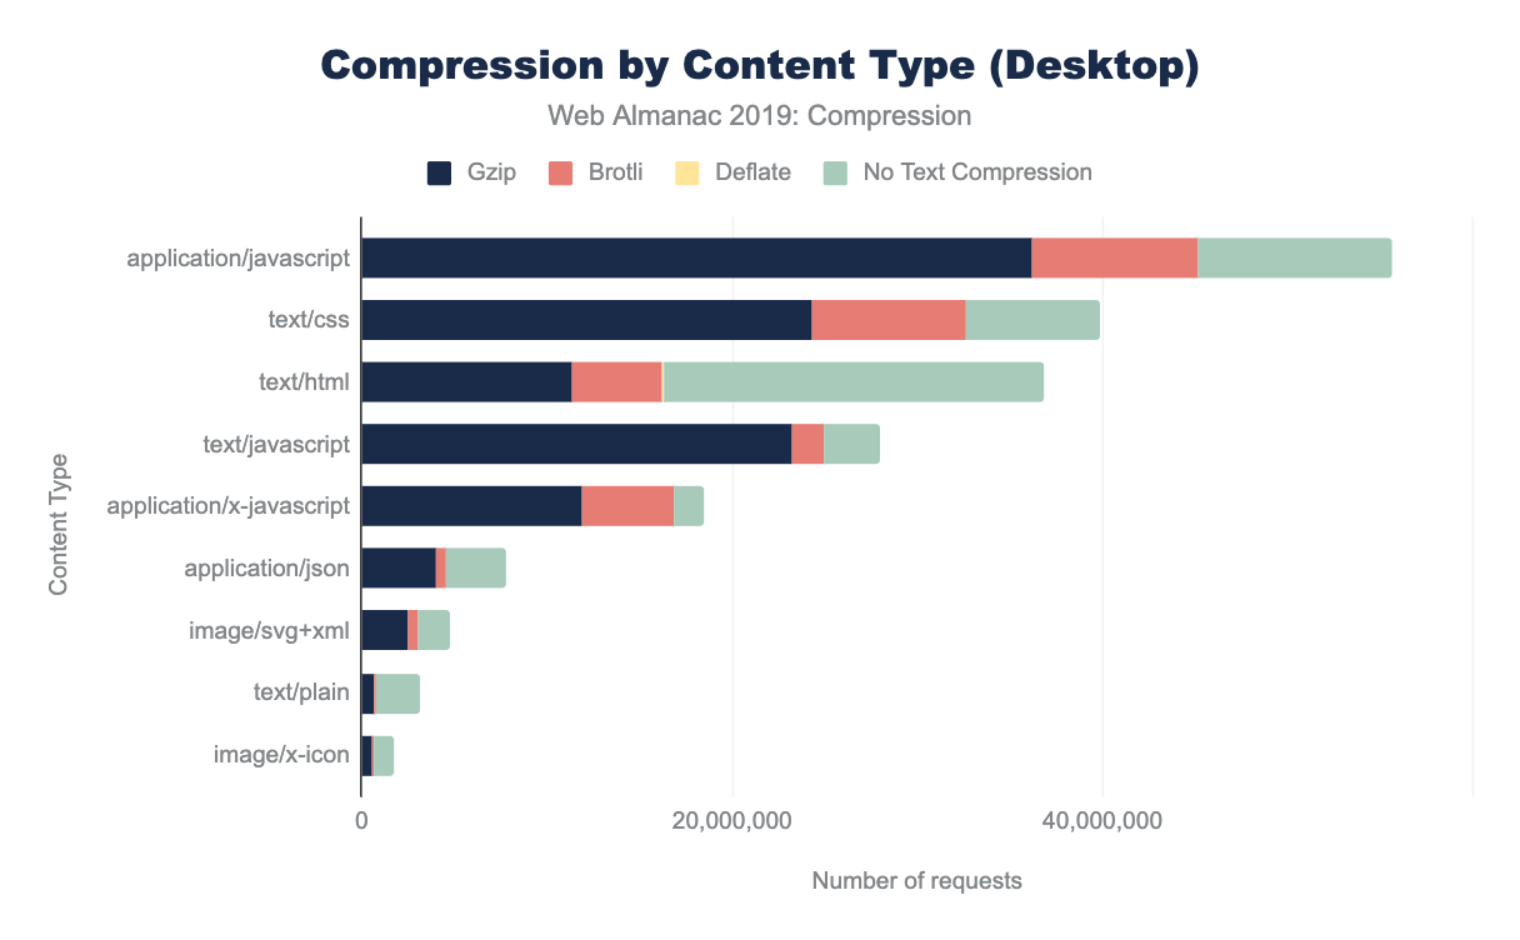 Figure 5. Compression by content type for desktop.